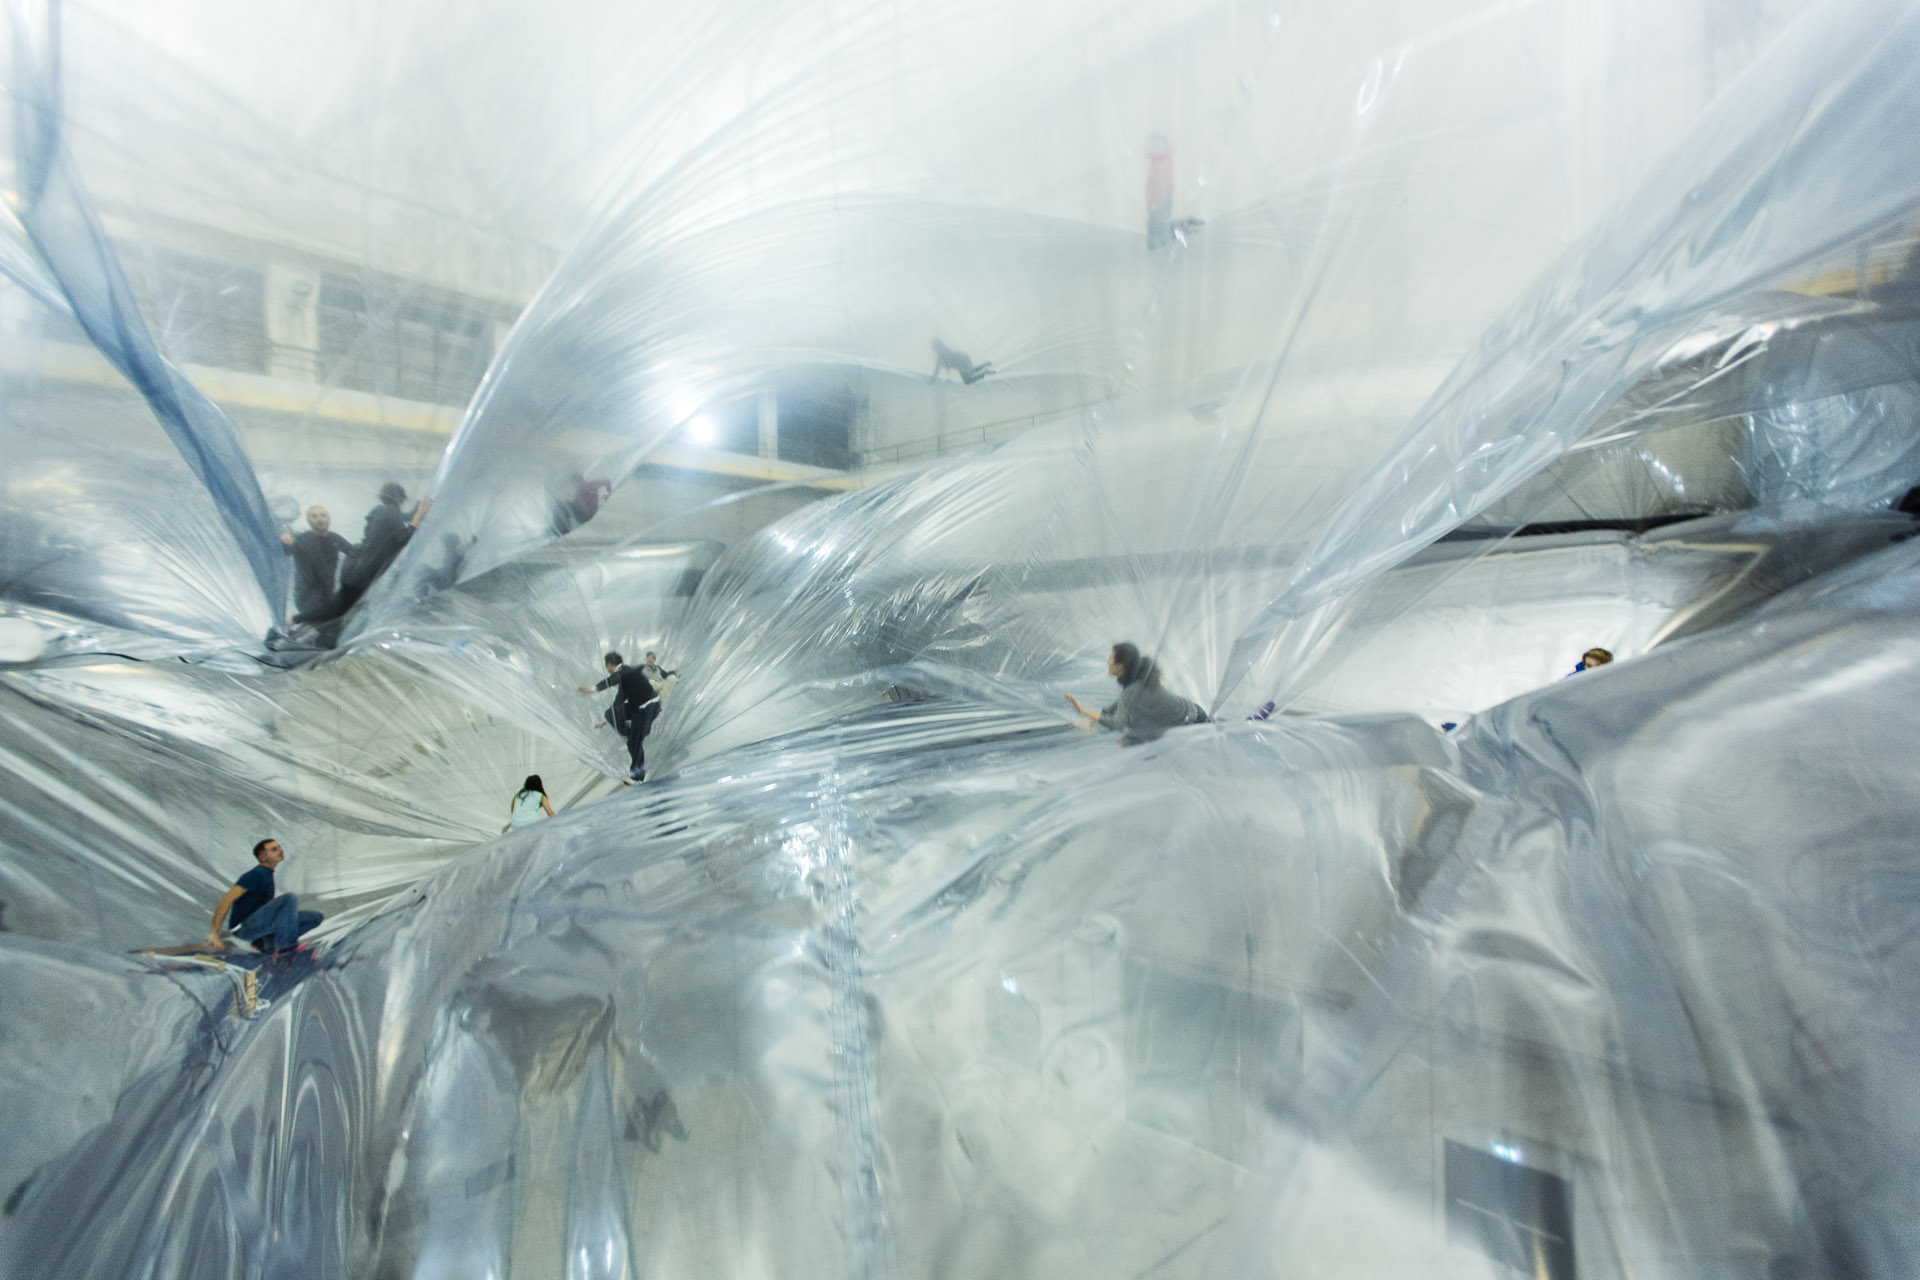 Tomas Saraceno : On Space time Foam at Hangar Bicocca, Milan 201